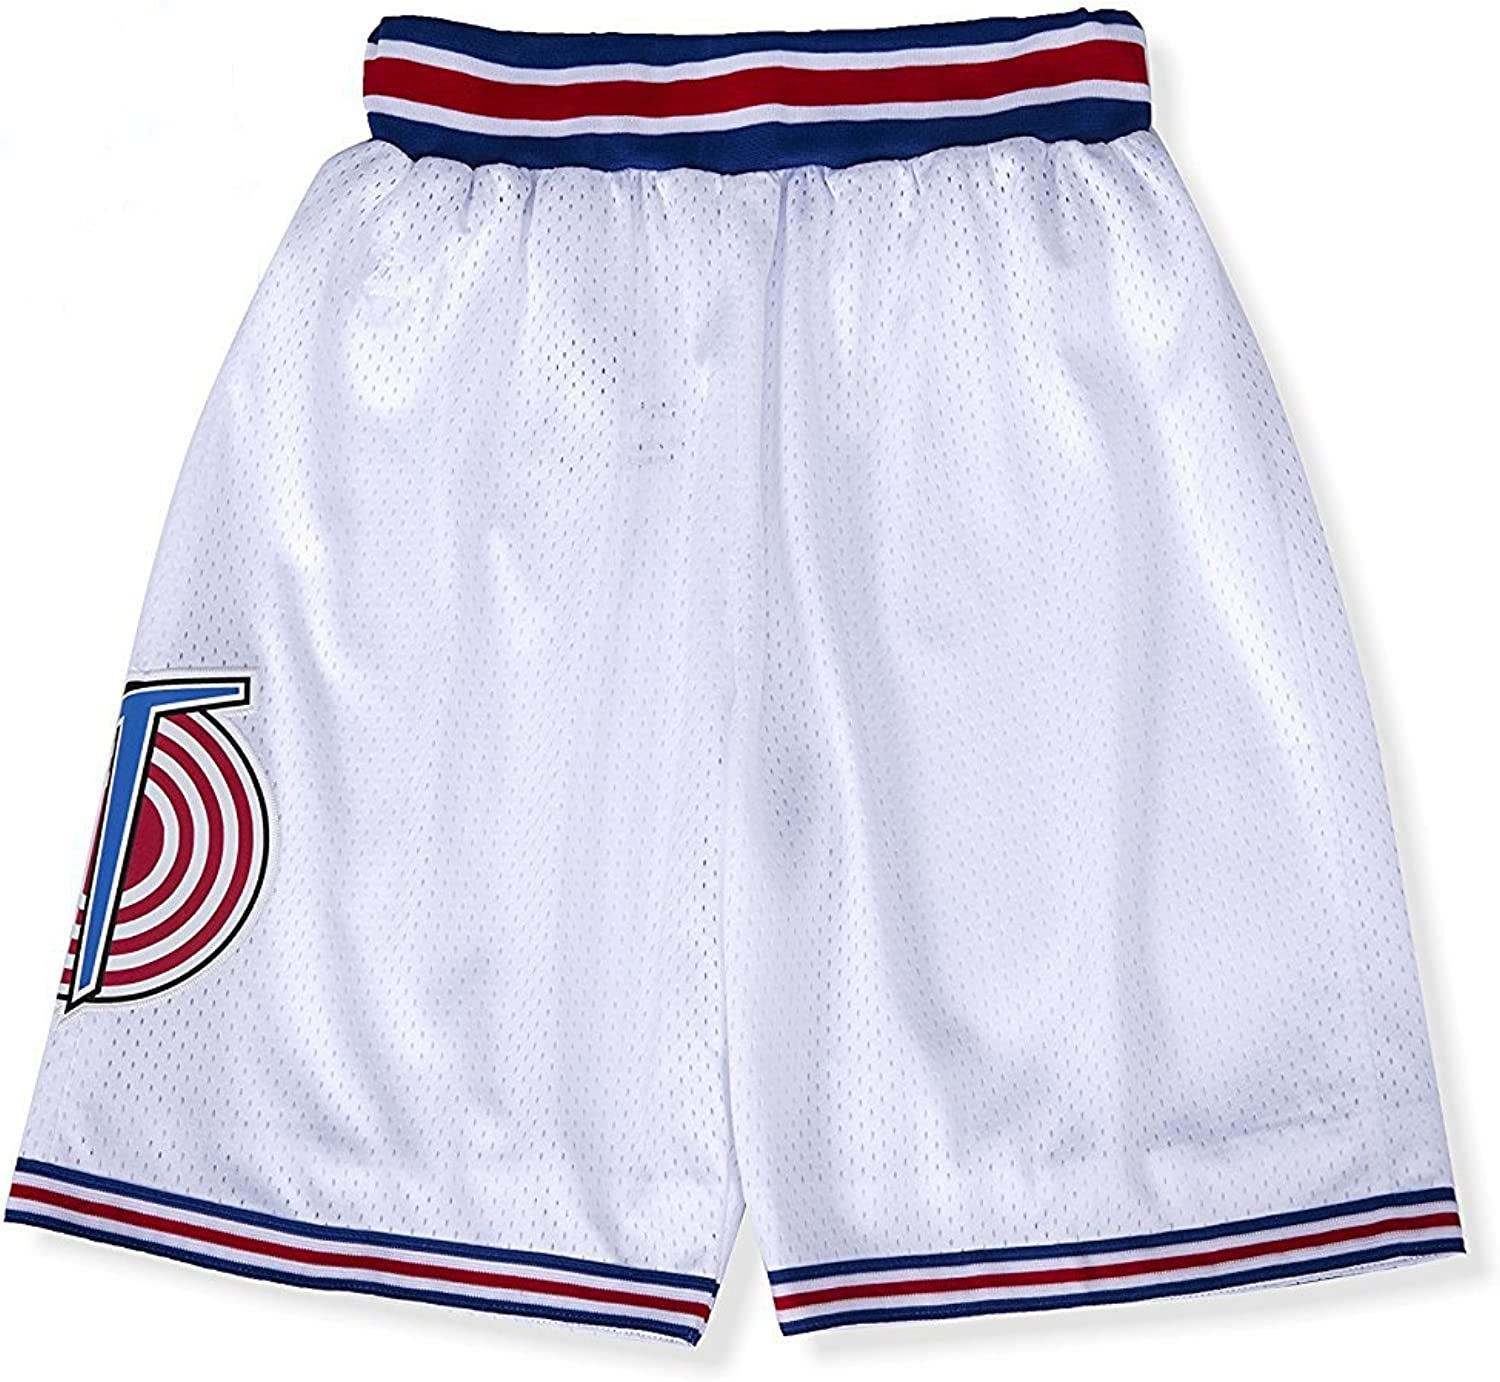 Purchase Outlet ☆ Free Shipping CNALLAR Men's Basketball Shorts Space Wh Movie